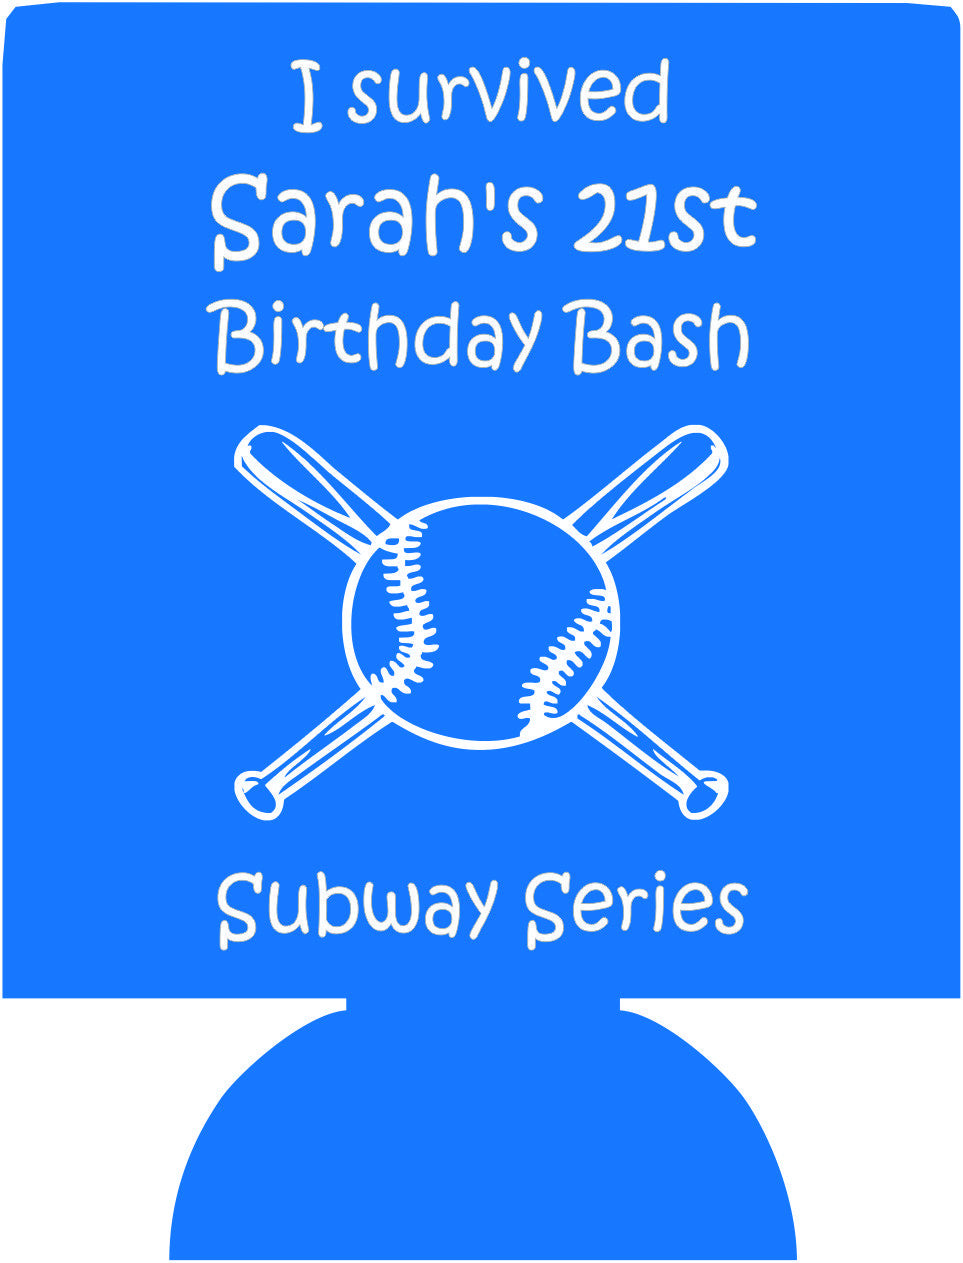 I survived 21st baseball Birthday bash subway Koozies